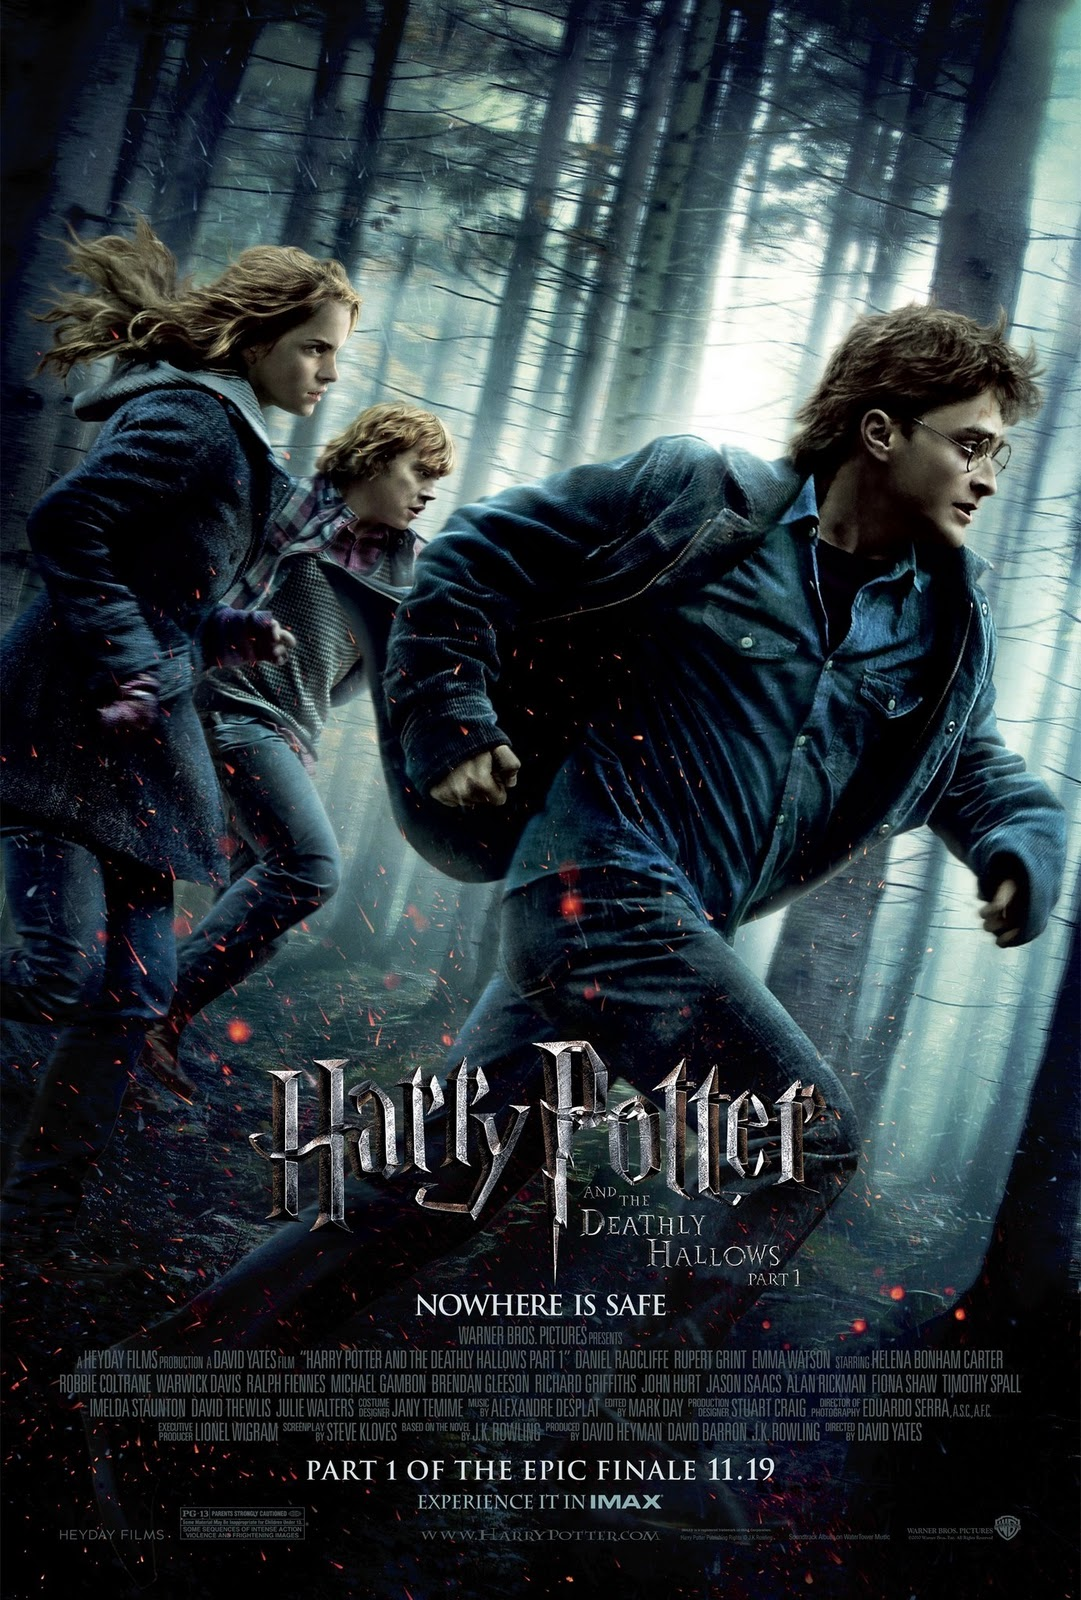 As a die hard Harry Potter fan whose first blu-ray purchase was the gift ...